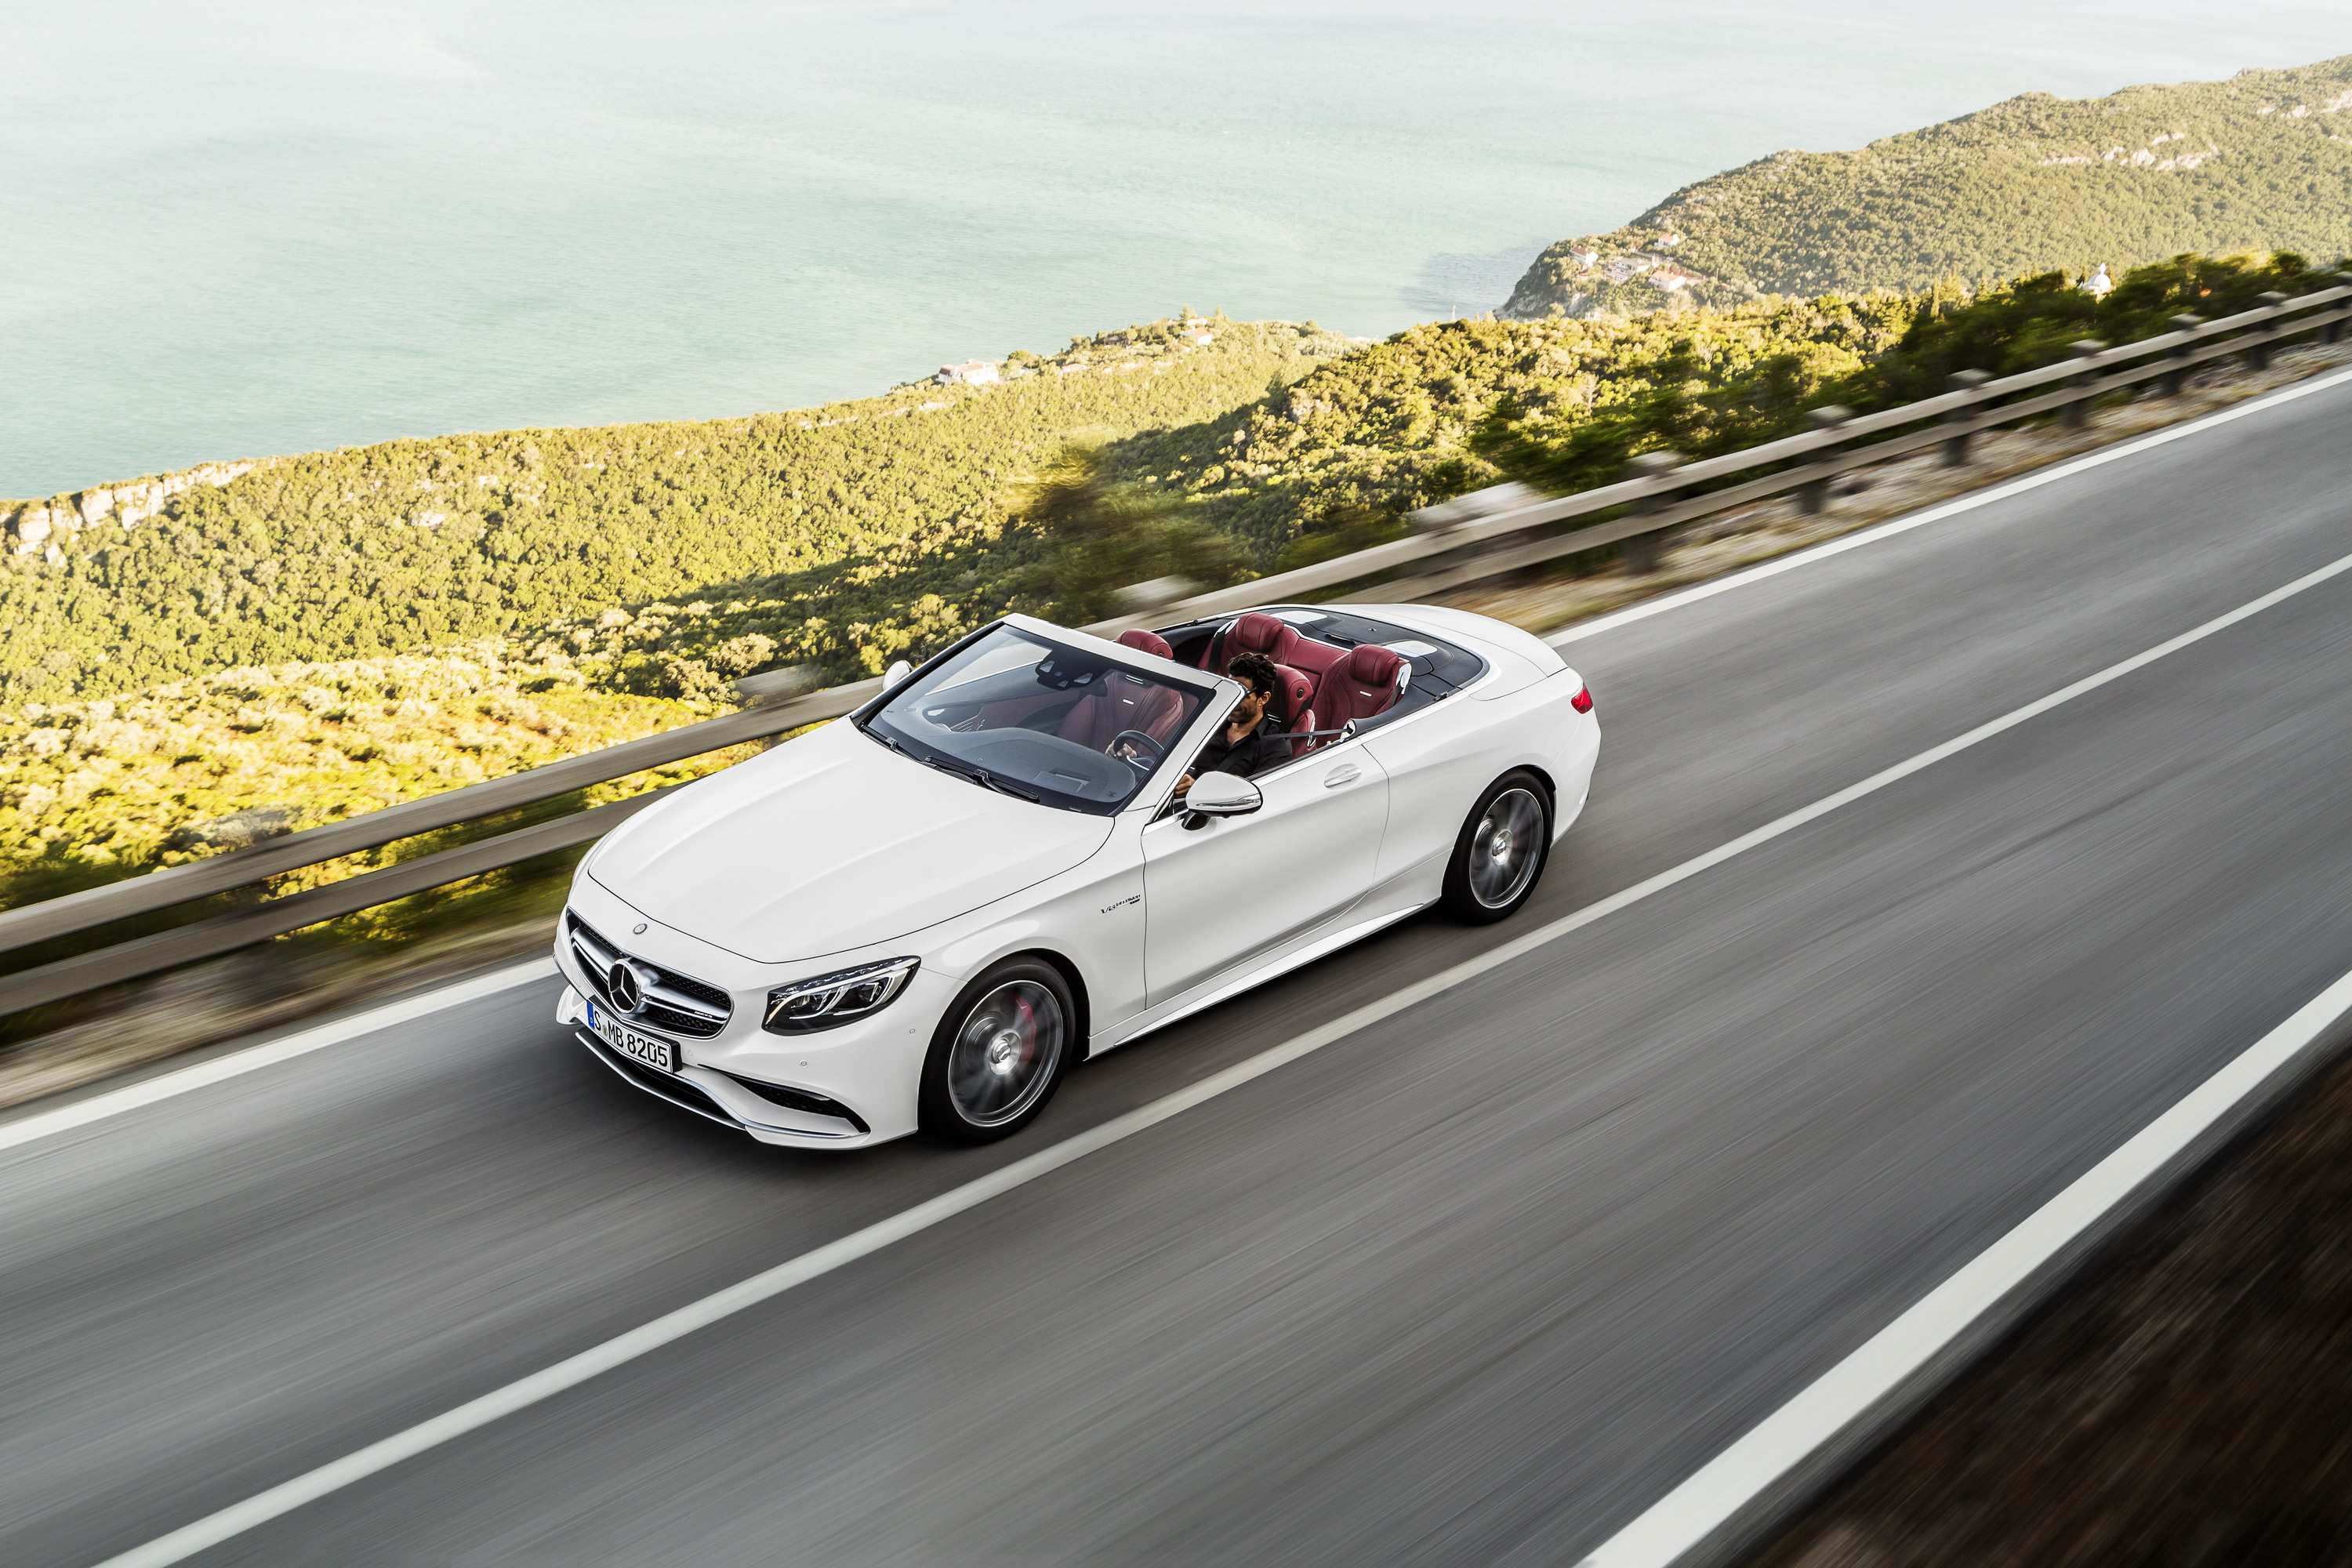 https://pictures.topspeed.com/IMG/jpg/201509/2017-mercedes-amg-s63-con-5.jpg